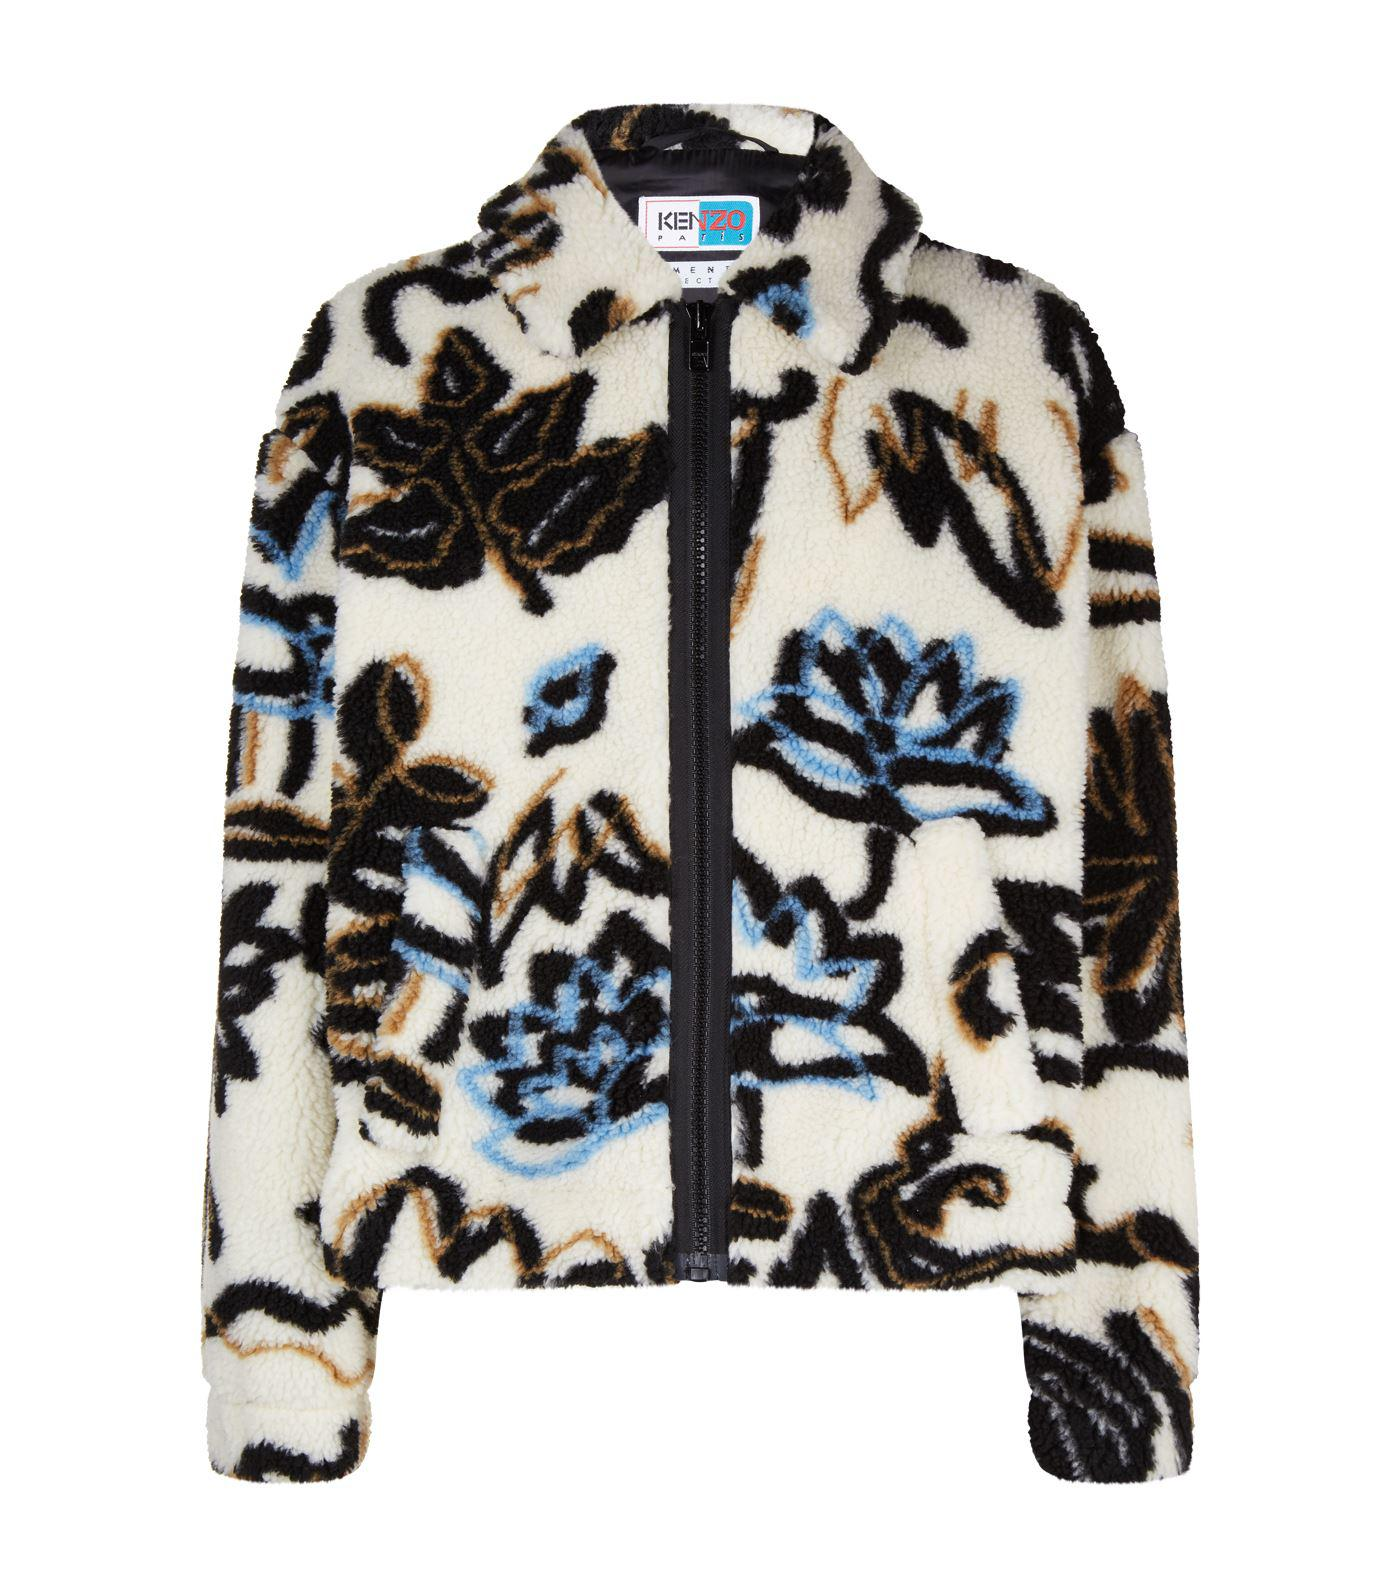 0f0cd79a57 KENZO Floral Fleece Jacket in Natural for Men - Lyst